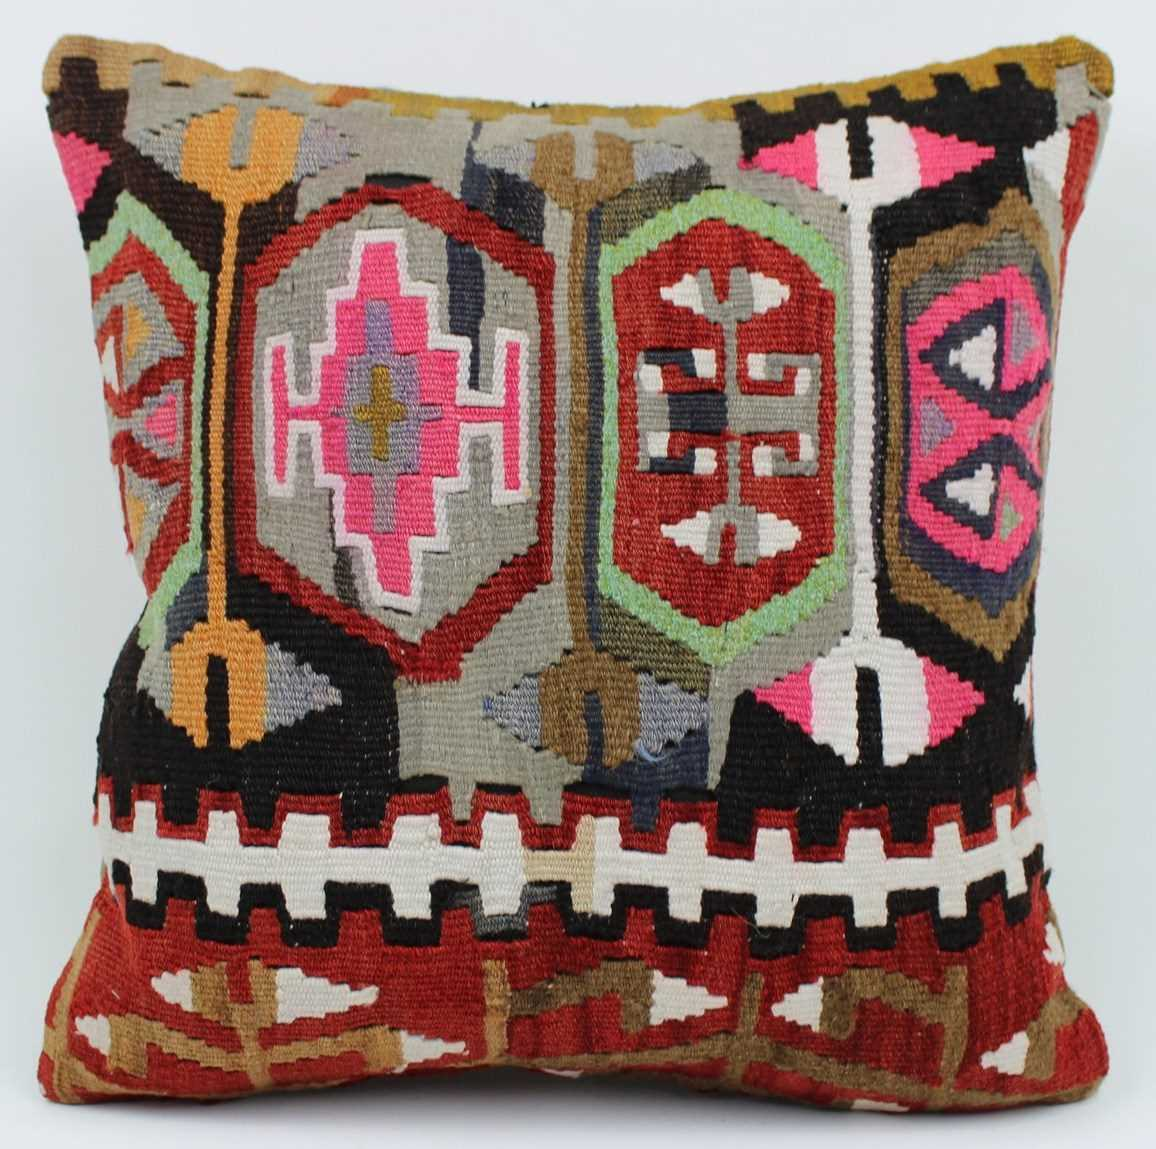 pillow image naturalfibresexport cushion cushioncovermanufactrurer india caption kilim kilimpillows cushions pillows